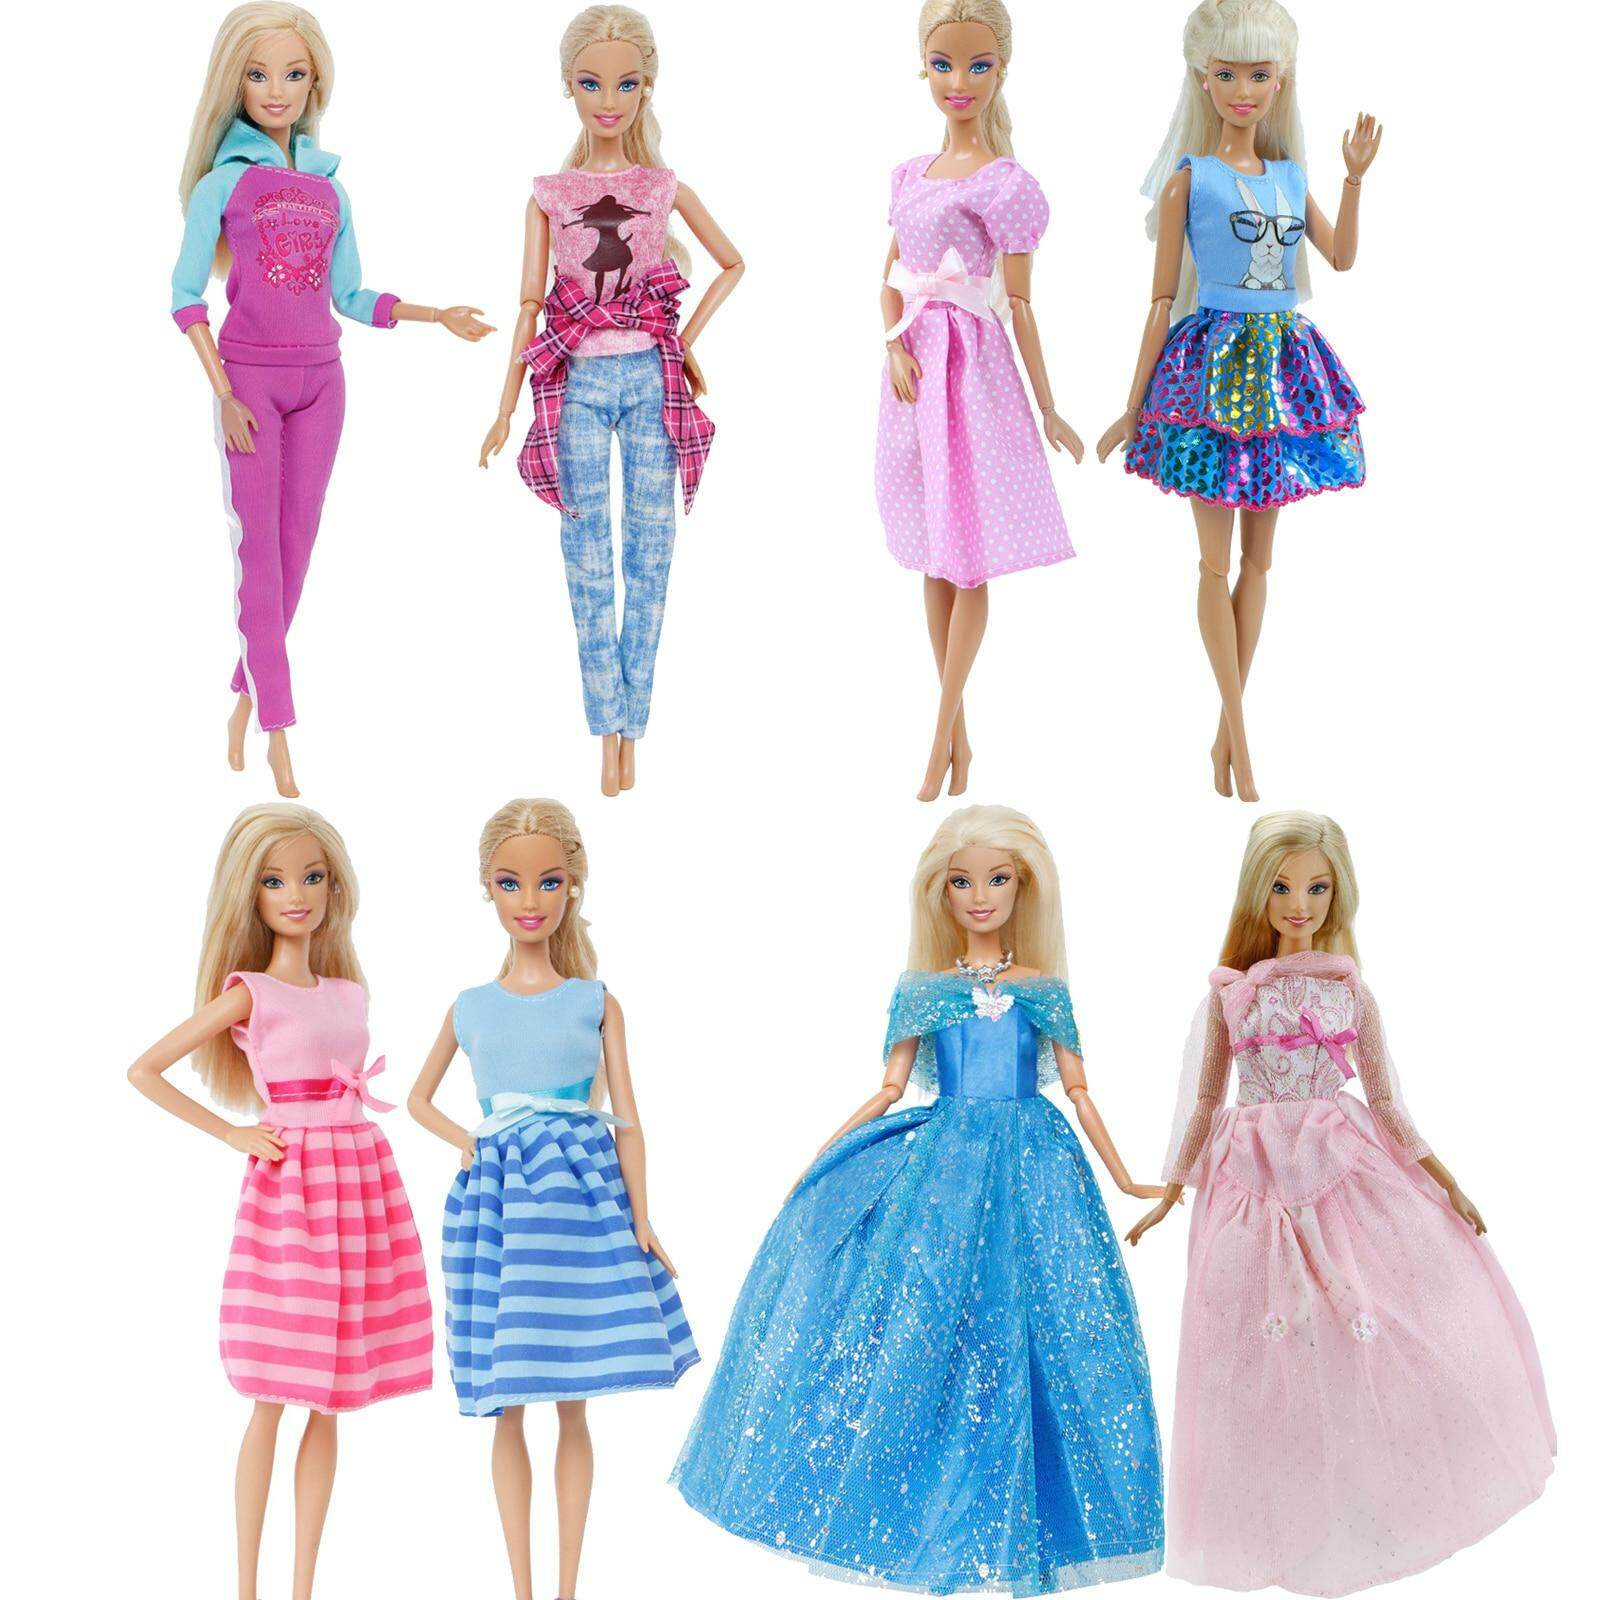 cee77a563d5 JM 2 Pcs / Lot Handmade Doll Dress for Barbie Doll Casual Daily Wear Twins  Outfit